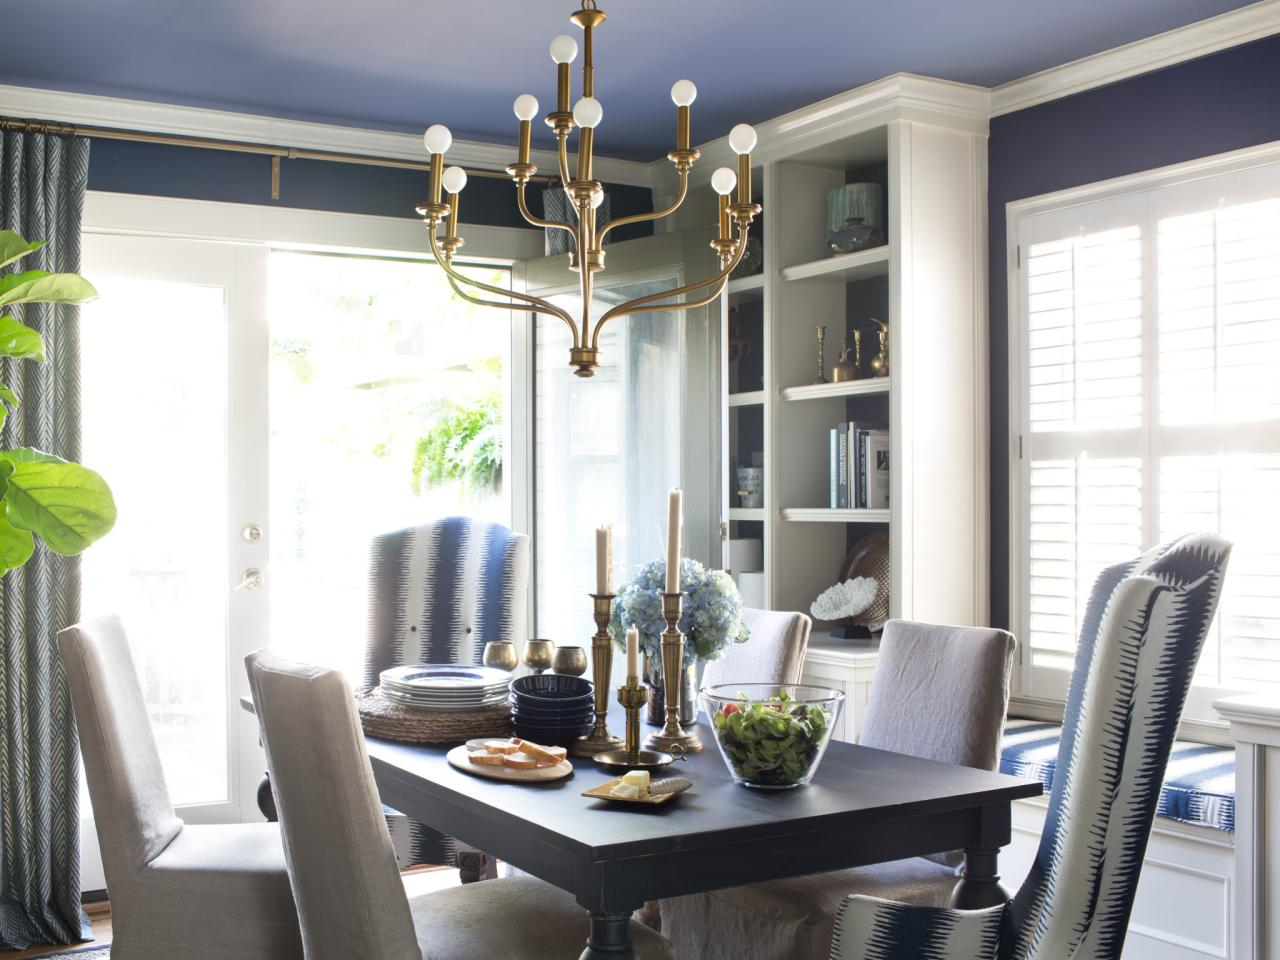 Photos hgtv Dining room designs 2014